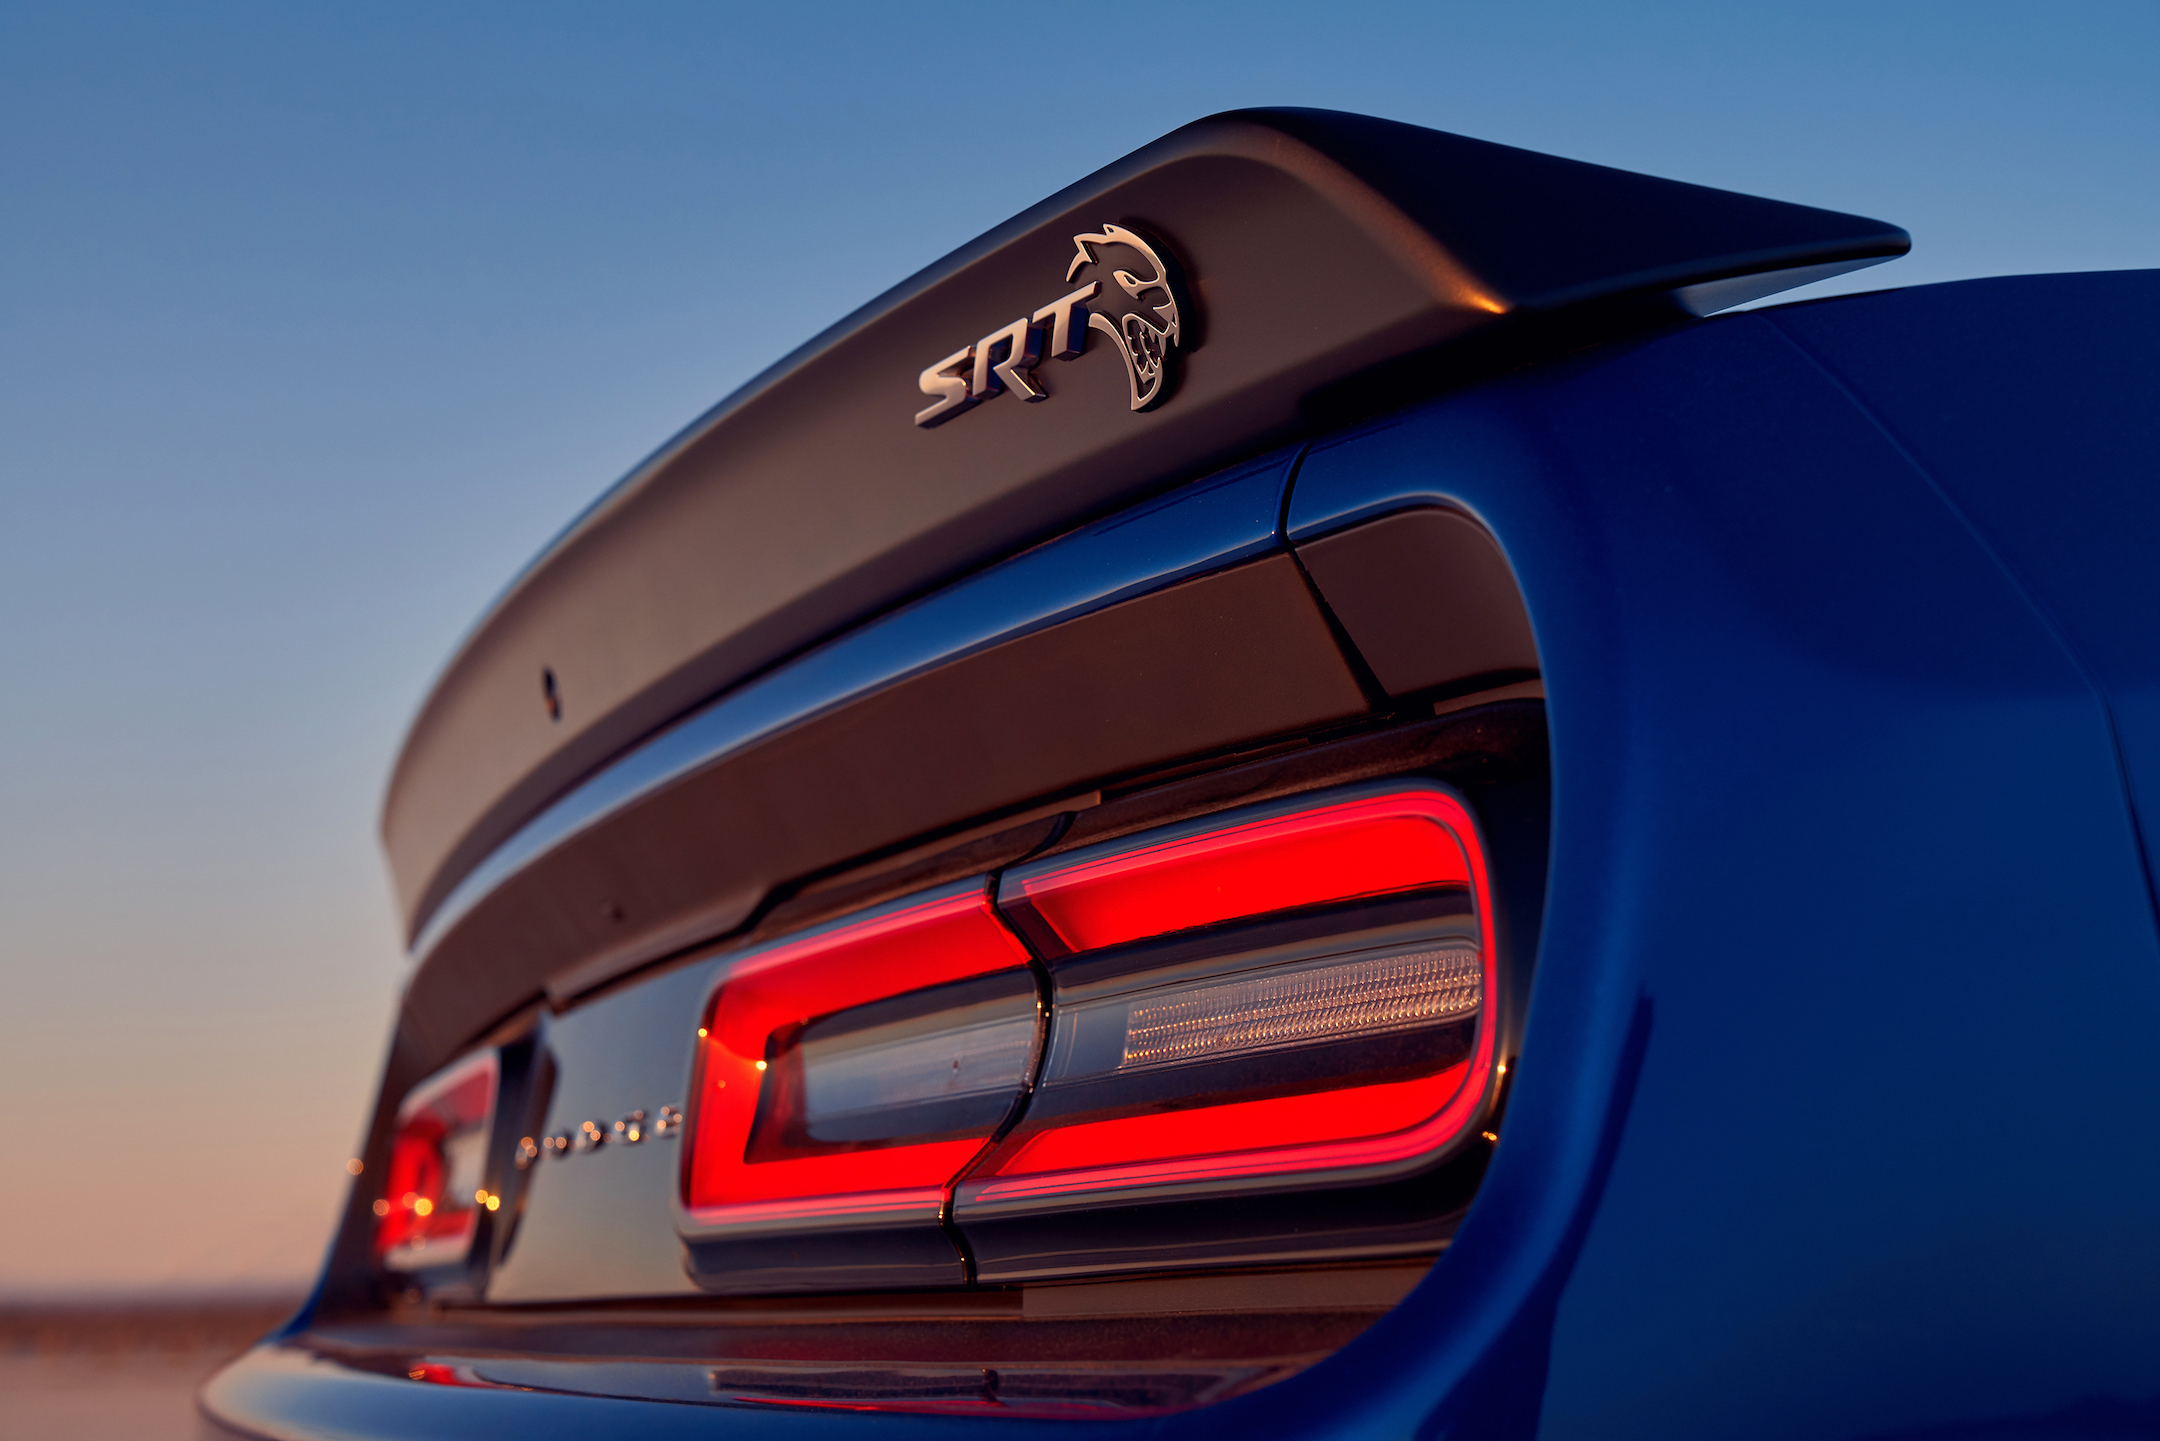 2019 Dodge Challenger Srt Hellcat Redeye A Driveways Review The Review Garage